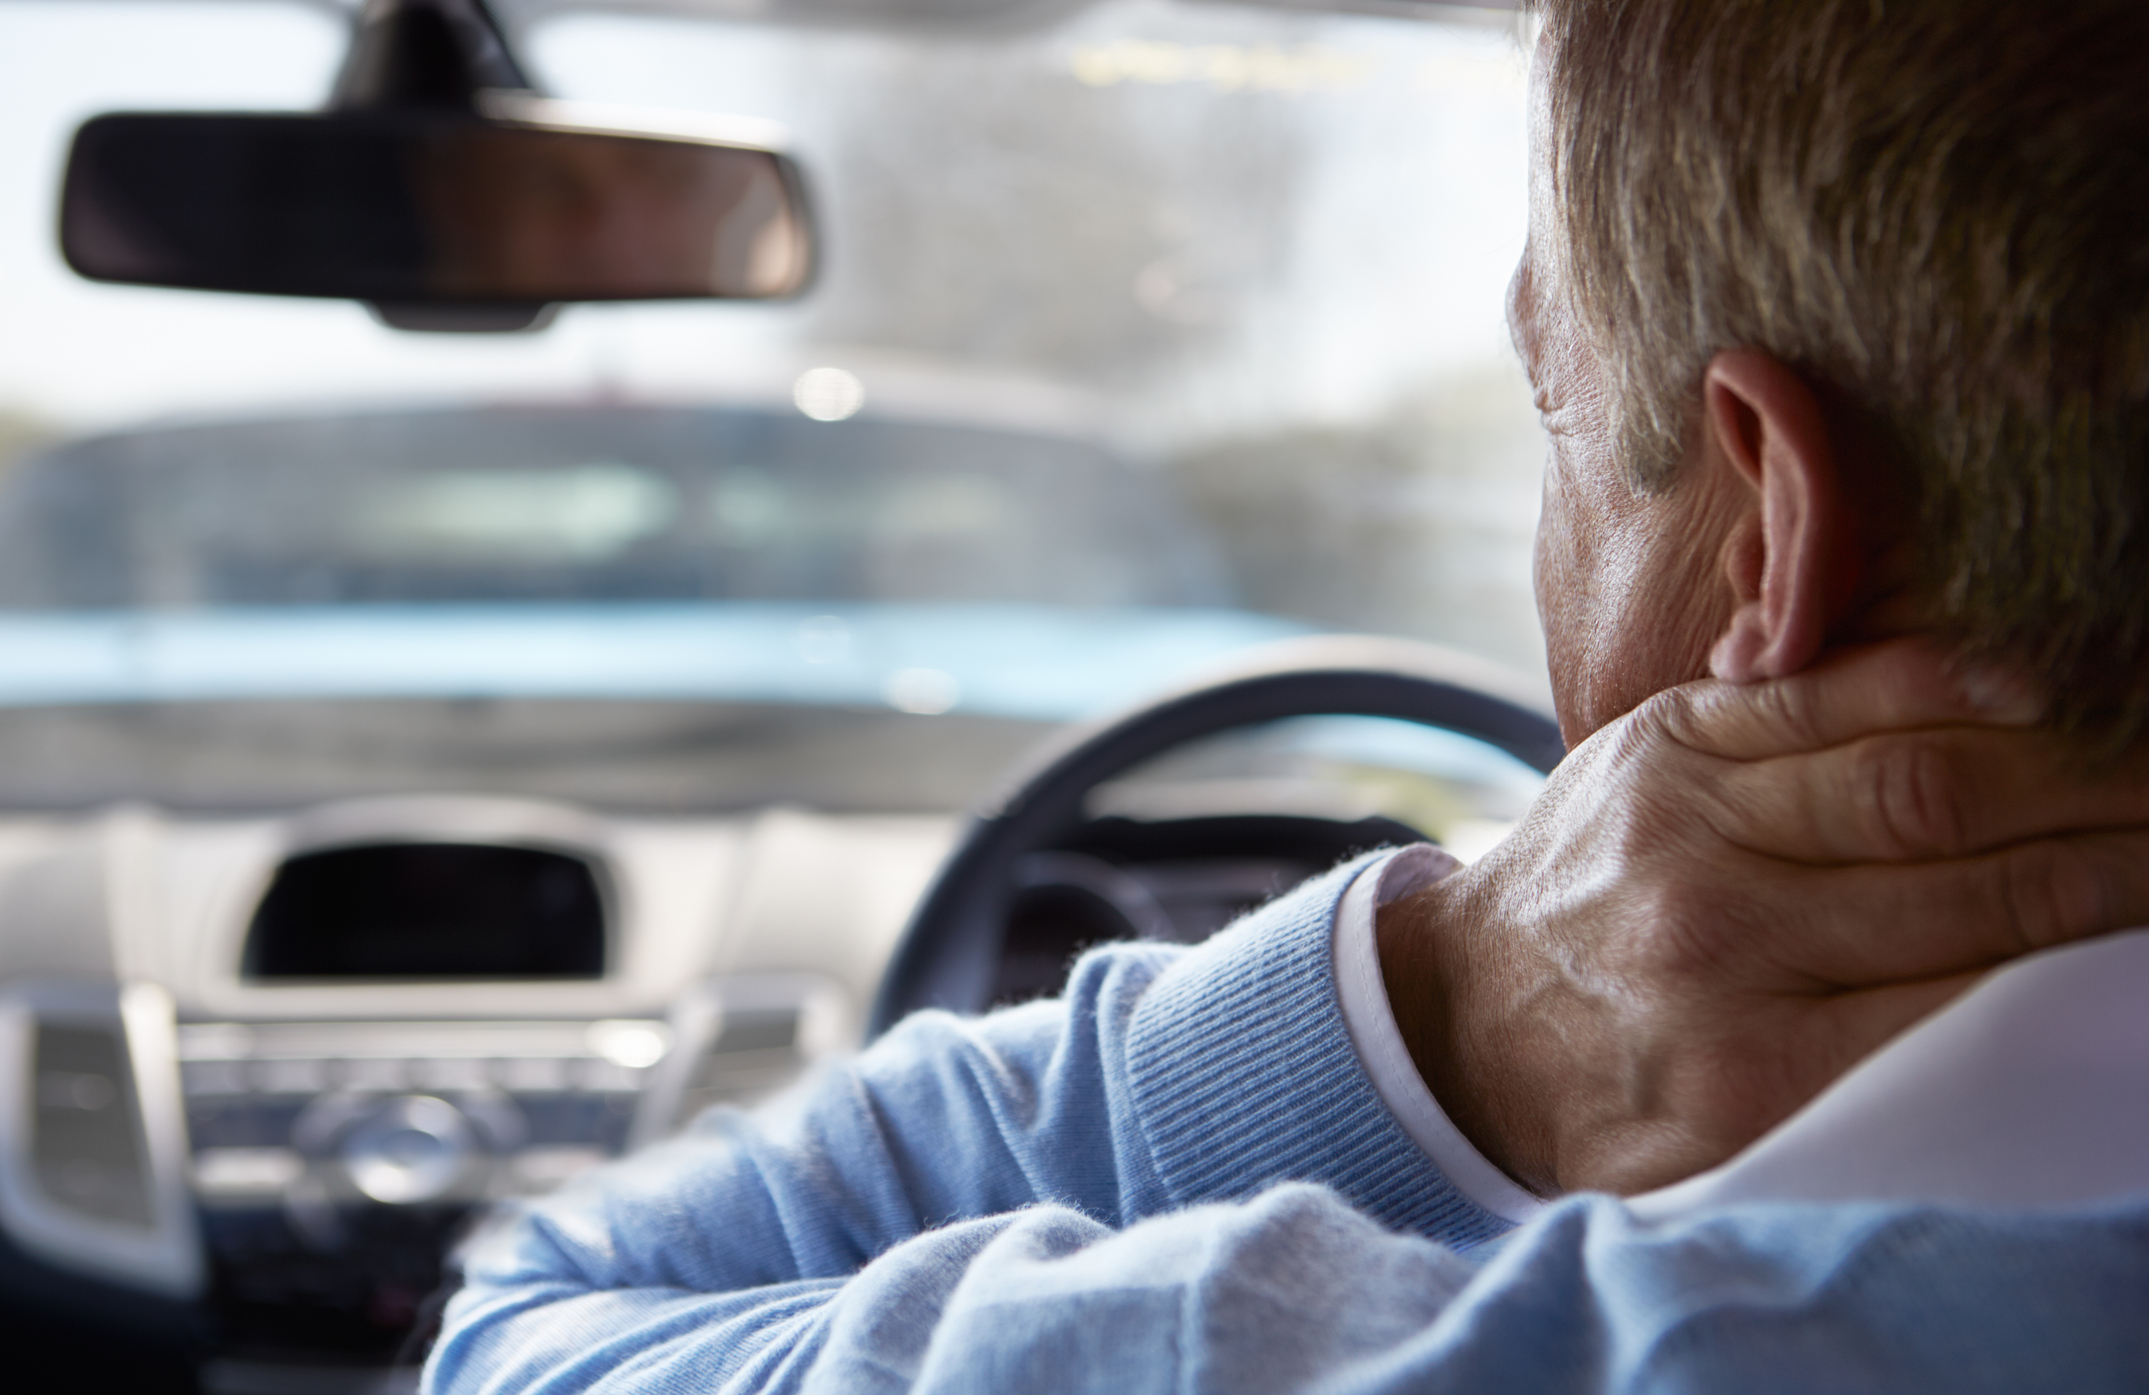 b2227d4ecf A new clampdown on whiplash claims is expected to cut car insurance premiums  by about £35 per year.